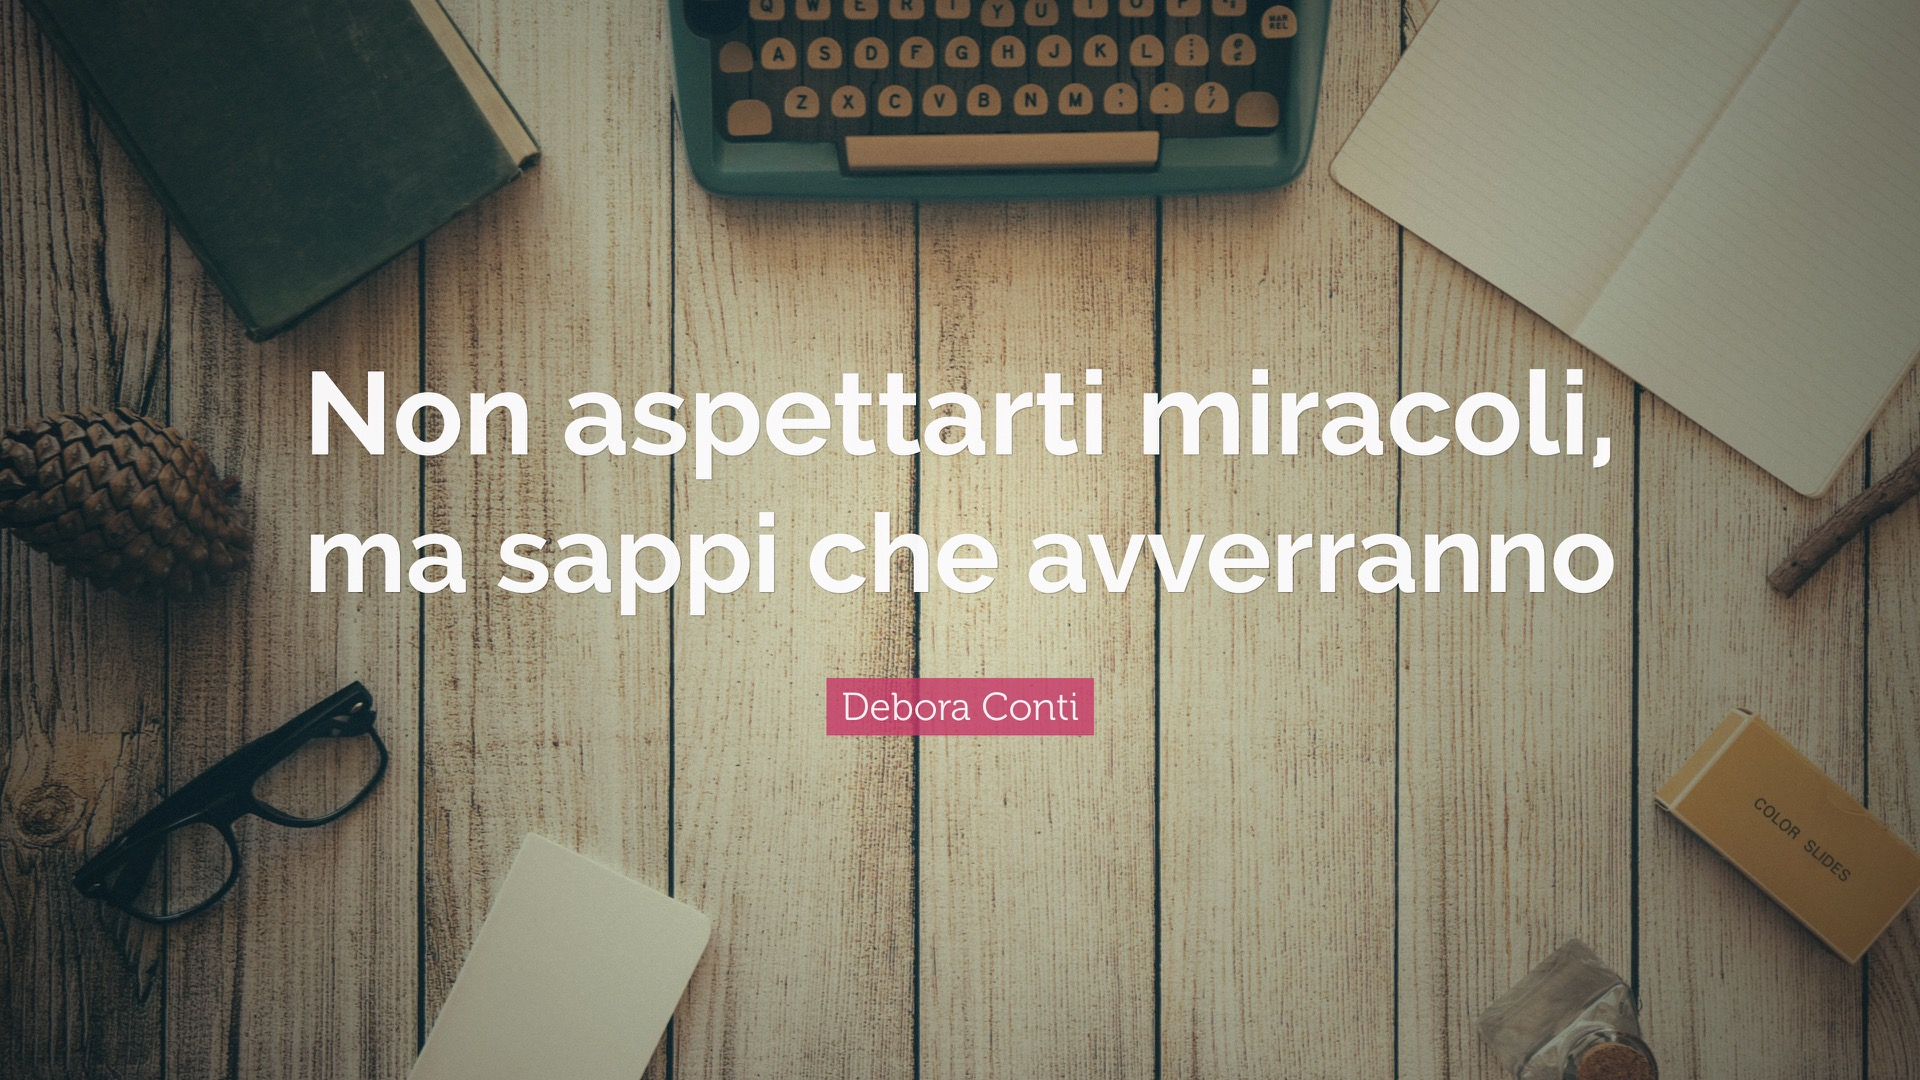 Quote » Debora Conti » Desktop » Screensaver